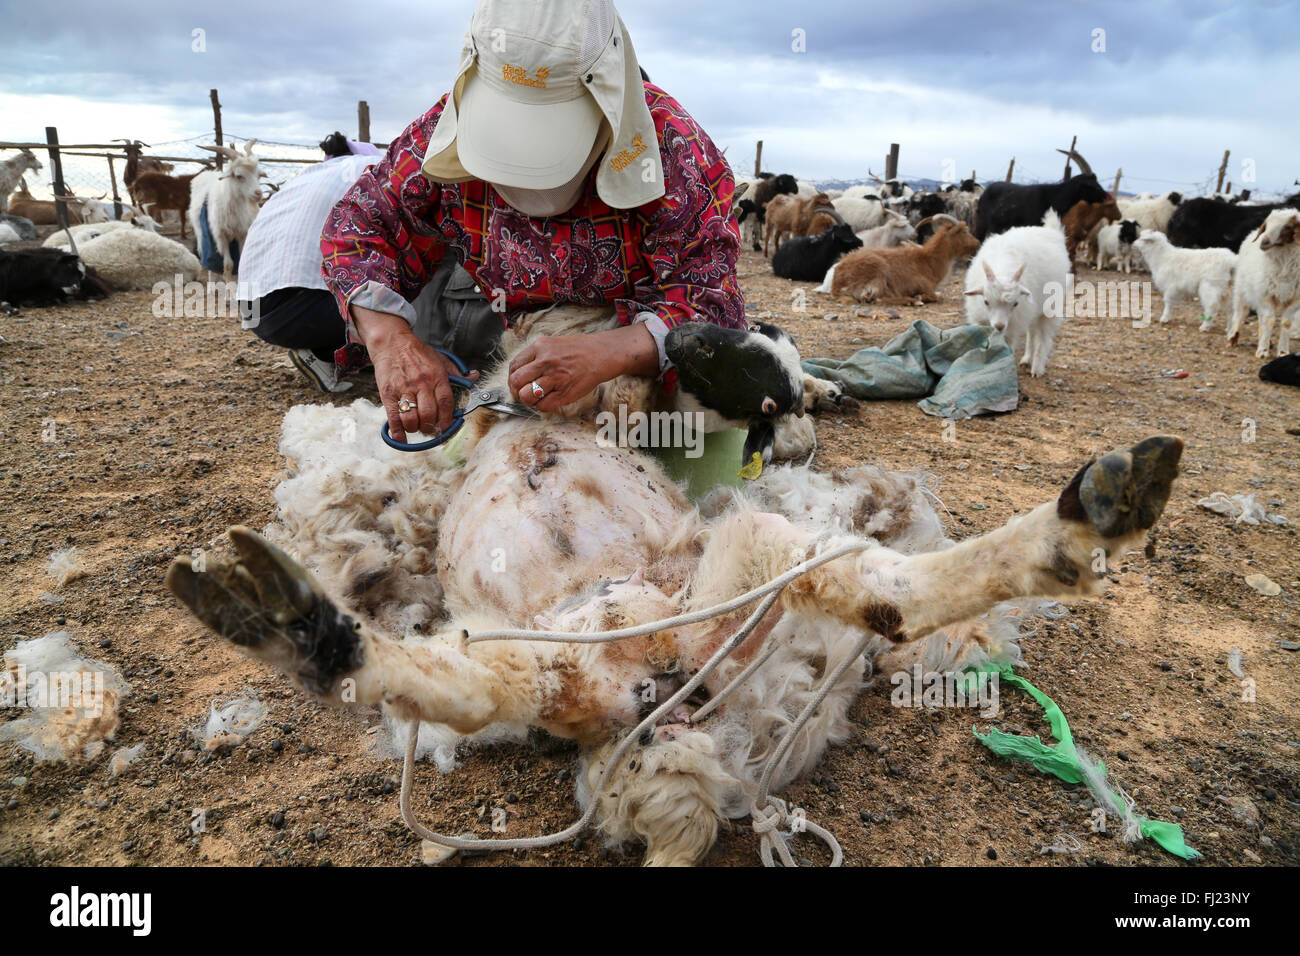 Nomadic woman in Gobi desert, Mongolia, is shaving a goat - Stock Image